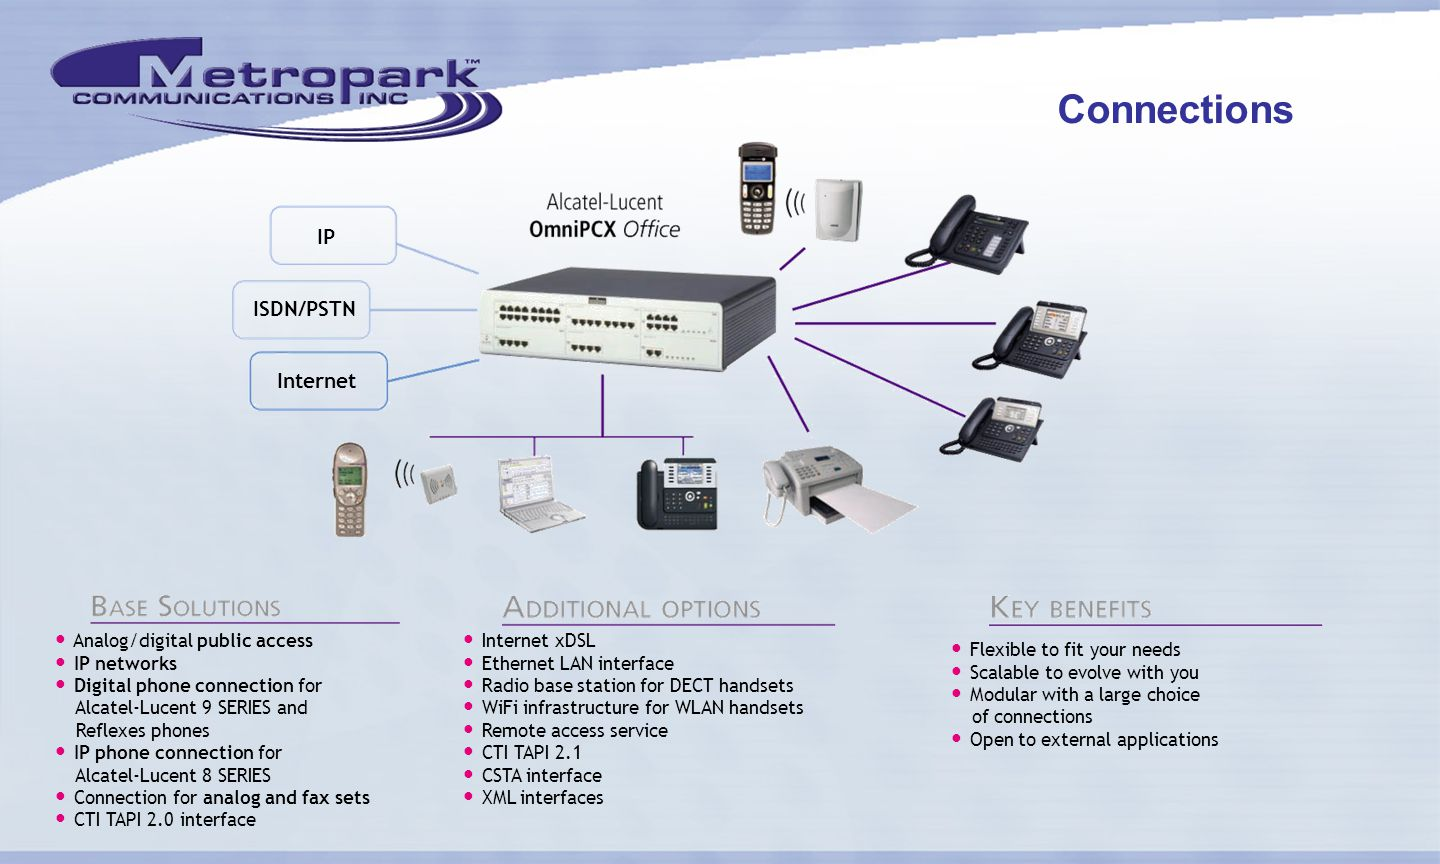 Connections Internet xDSL Ethernet LAN interface Radio base station for DECT handsets WiFi infrastructure for WLAN handsets Remote access service CTI TAPI 2.1 CSTA interface XML interfaces Flexible to fit your needs Scalable to evolve with you Modular with a large choice of connections Open to external applications Analog/digital public access IP networks Digital phone connection for Alcatel-Lucent 9 SERIES and Reflexes phones IP phone connection for Alcatel-Lucent 8 SERIES Connection for analog and fax sets CTI TAPI 2.0 interface IP ISDN/PSTN Internet